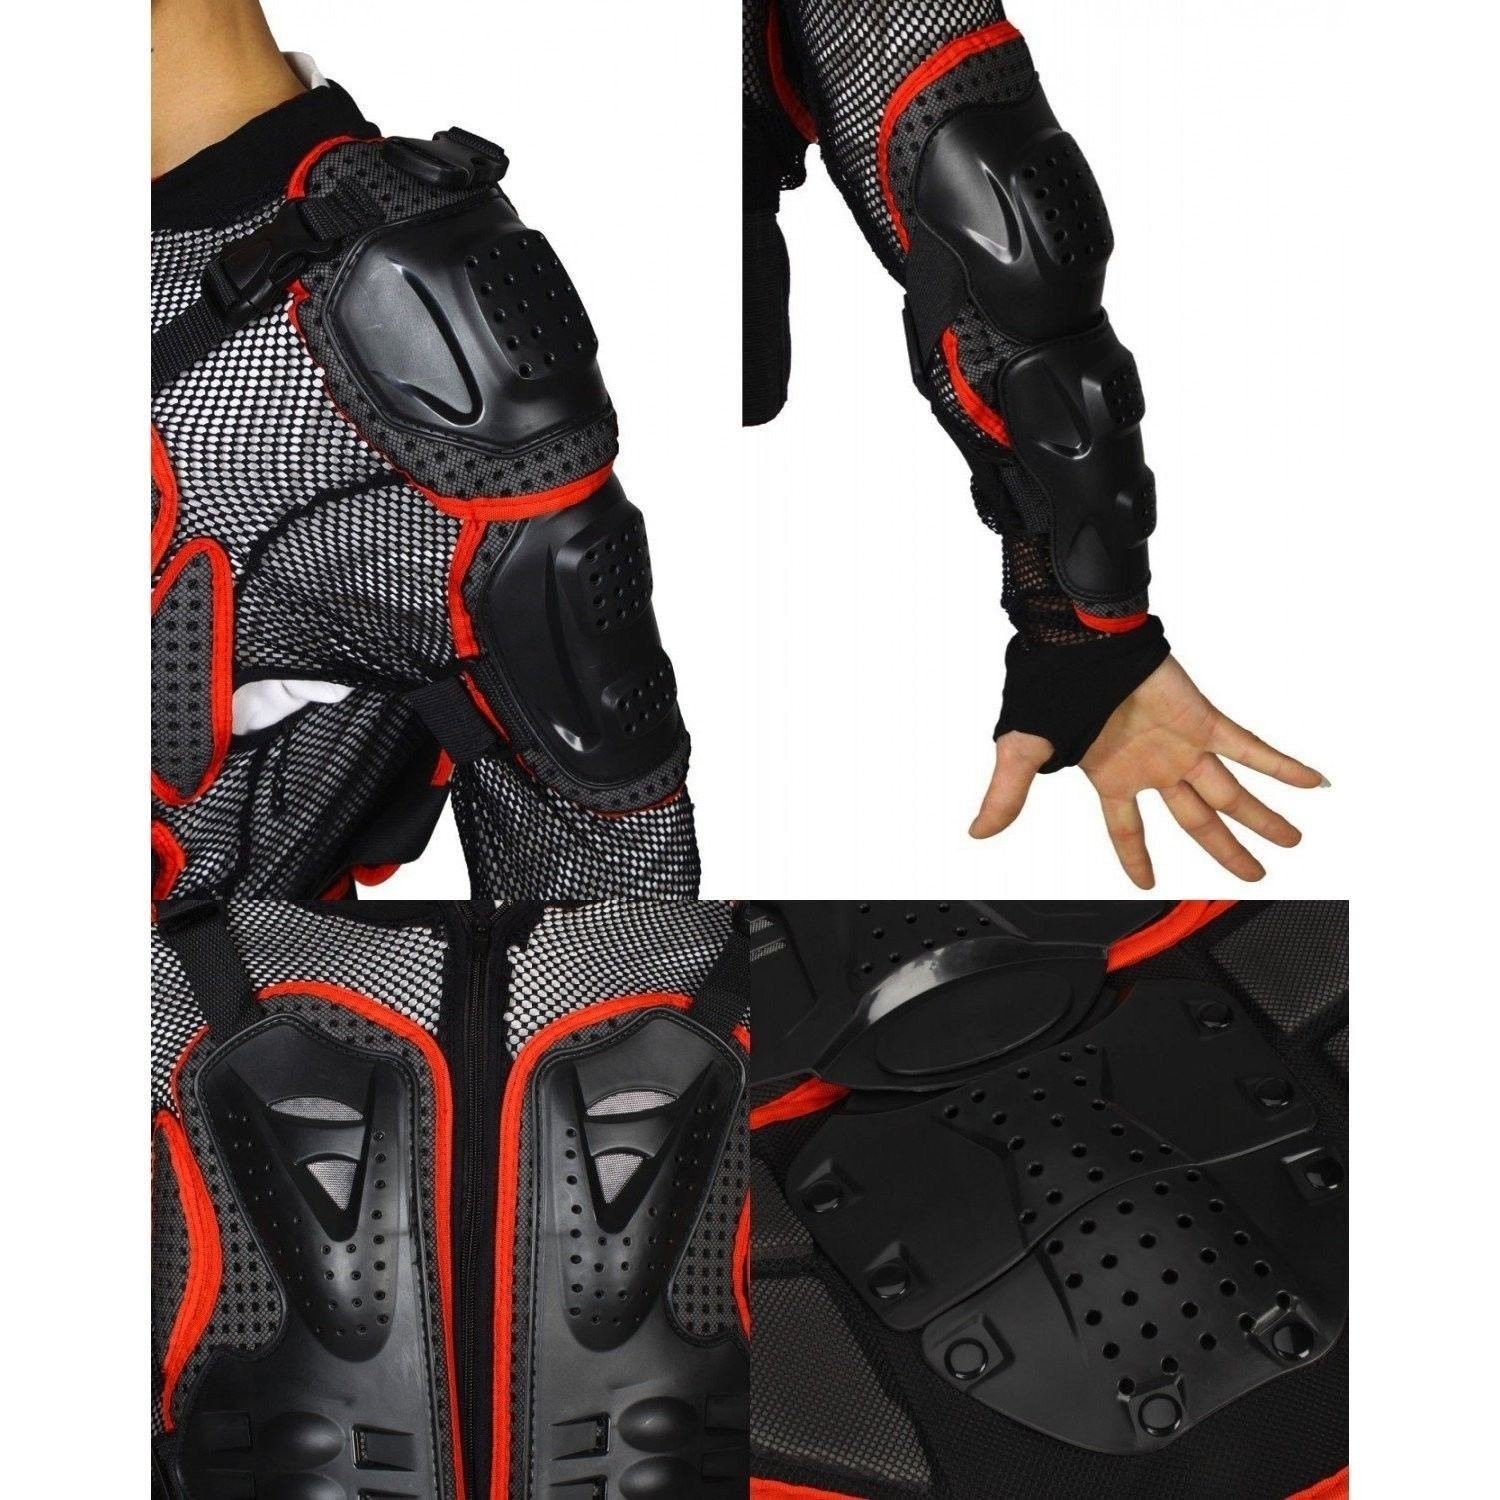 Size L red Motorcycle Parts Full Body Protective Jacket Spine Chest Gear Armor Off Road Protector Motorcross Racing Clothing Fit For 1999 2000 2001 2002 2003 2004 2005 2006 Suzuki HAYABUSA/GSXR1300 2007